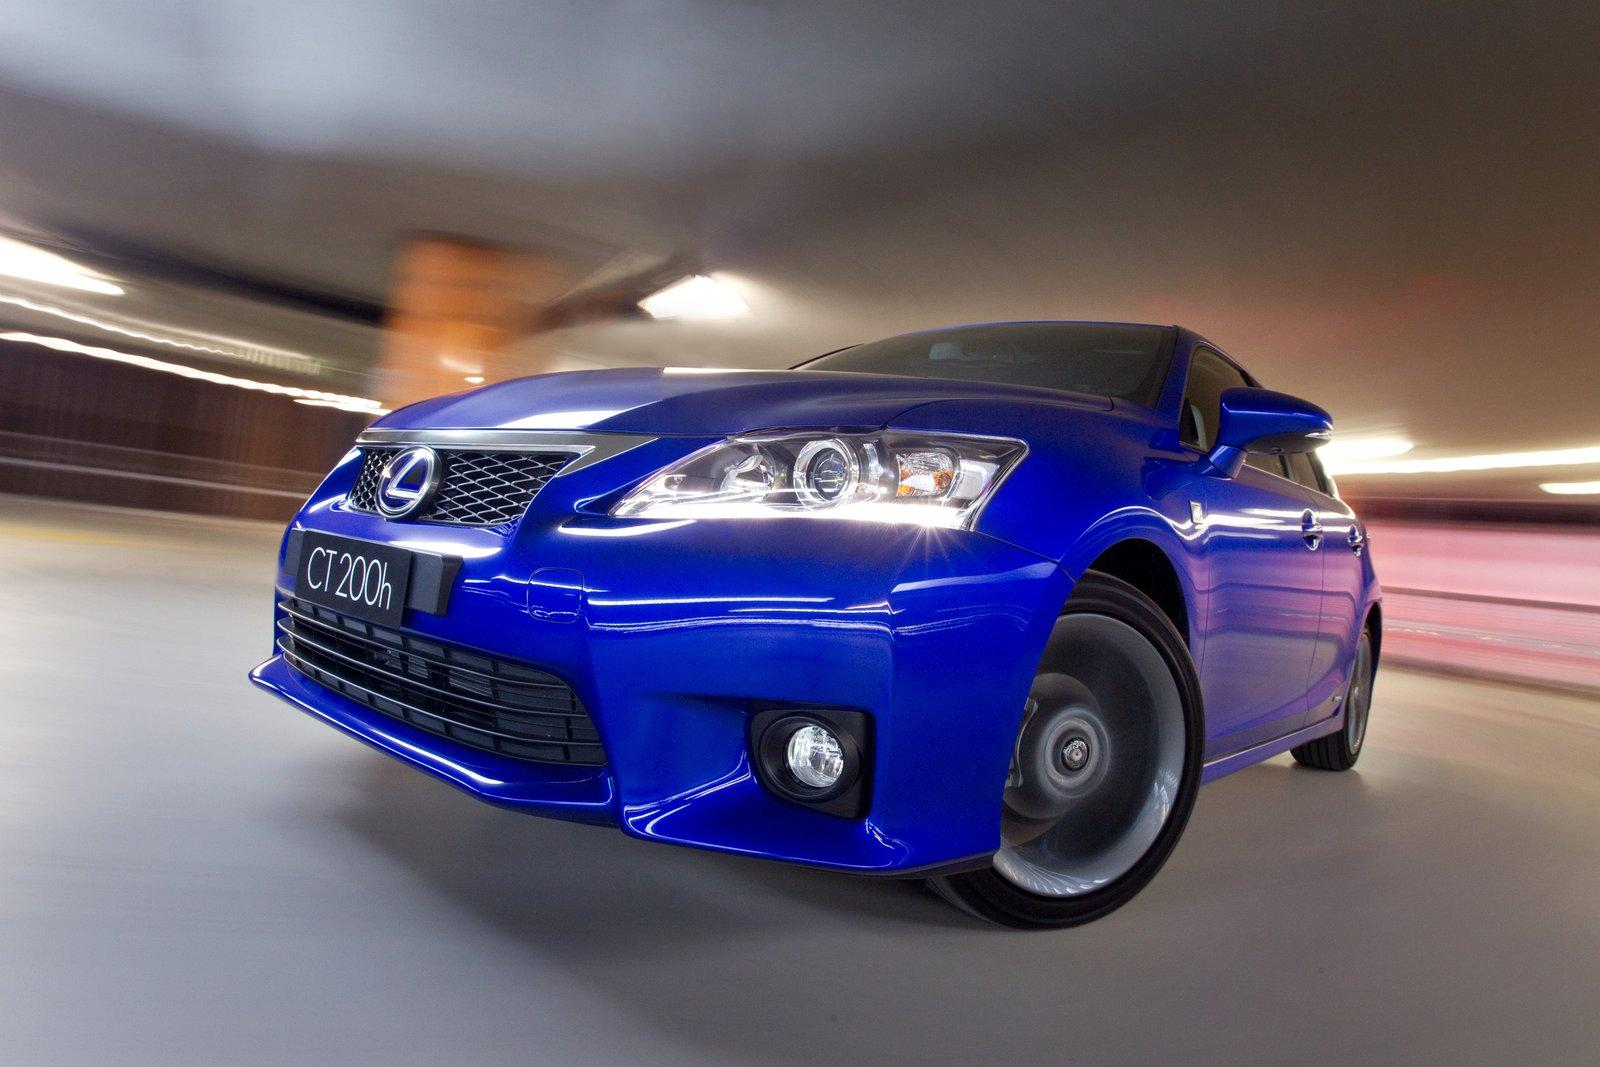 2012 Lexus CT200h 6 NEW LEXUS CT200H 2012 WILL HAVE F SPORT PACKAGE IN THE US EDITION